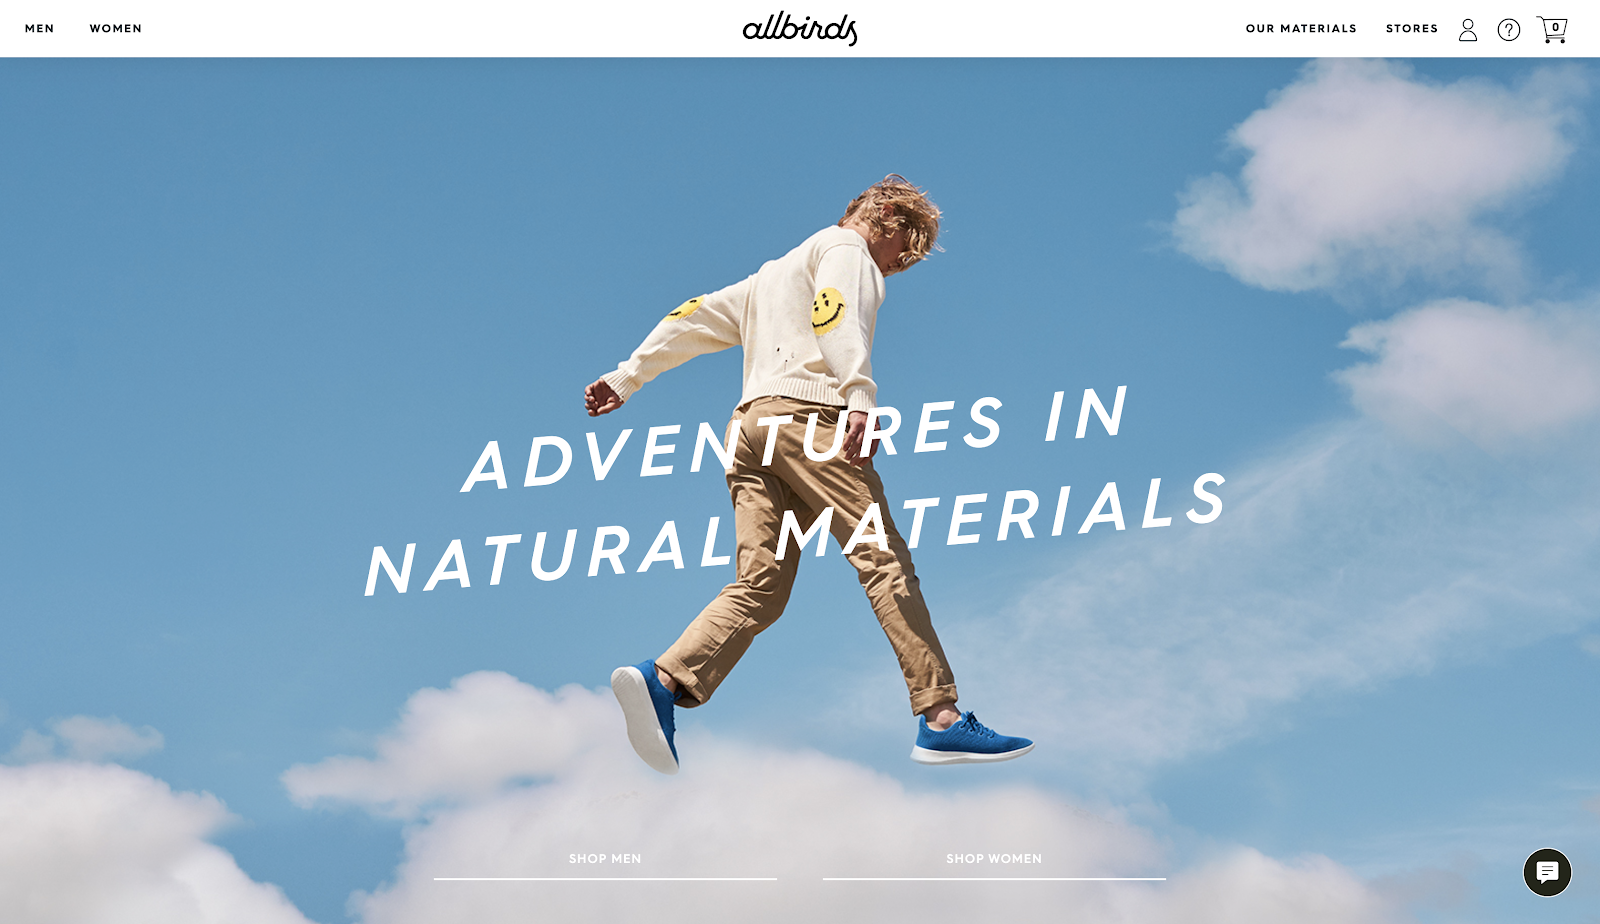 A product image for Allbirds shoes depicts a man walking on clouds.